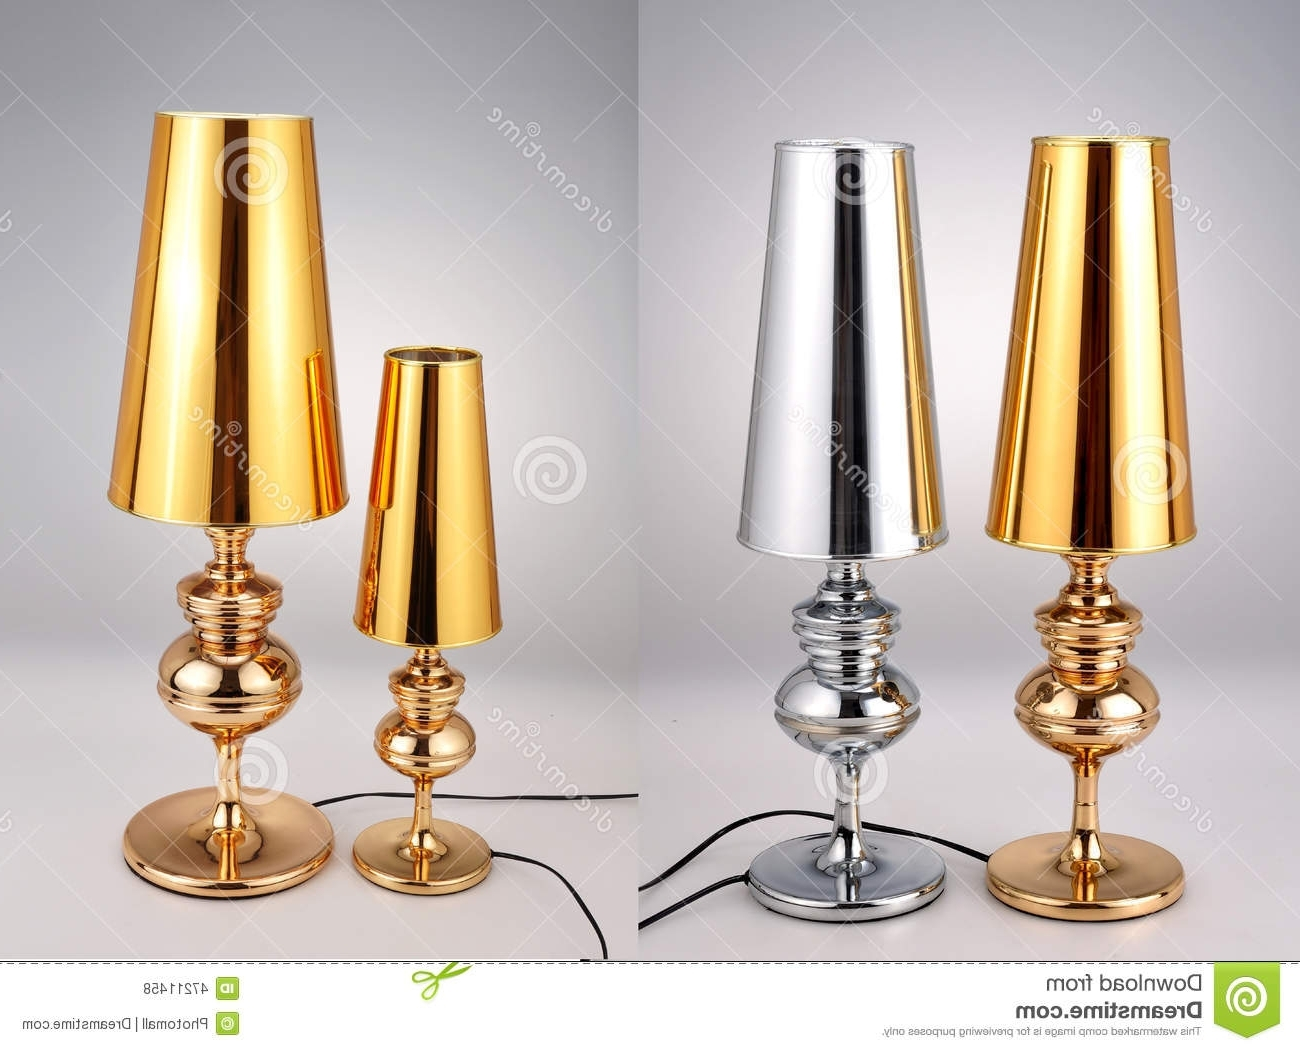 2019 Golden And Silver Table Lamps,luxury Table Lights Stock Photo With Gold Living Room Table Lamps (View 1 of 20)